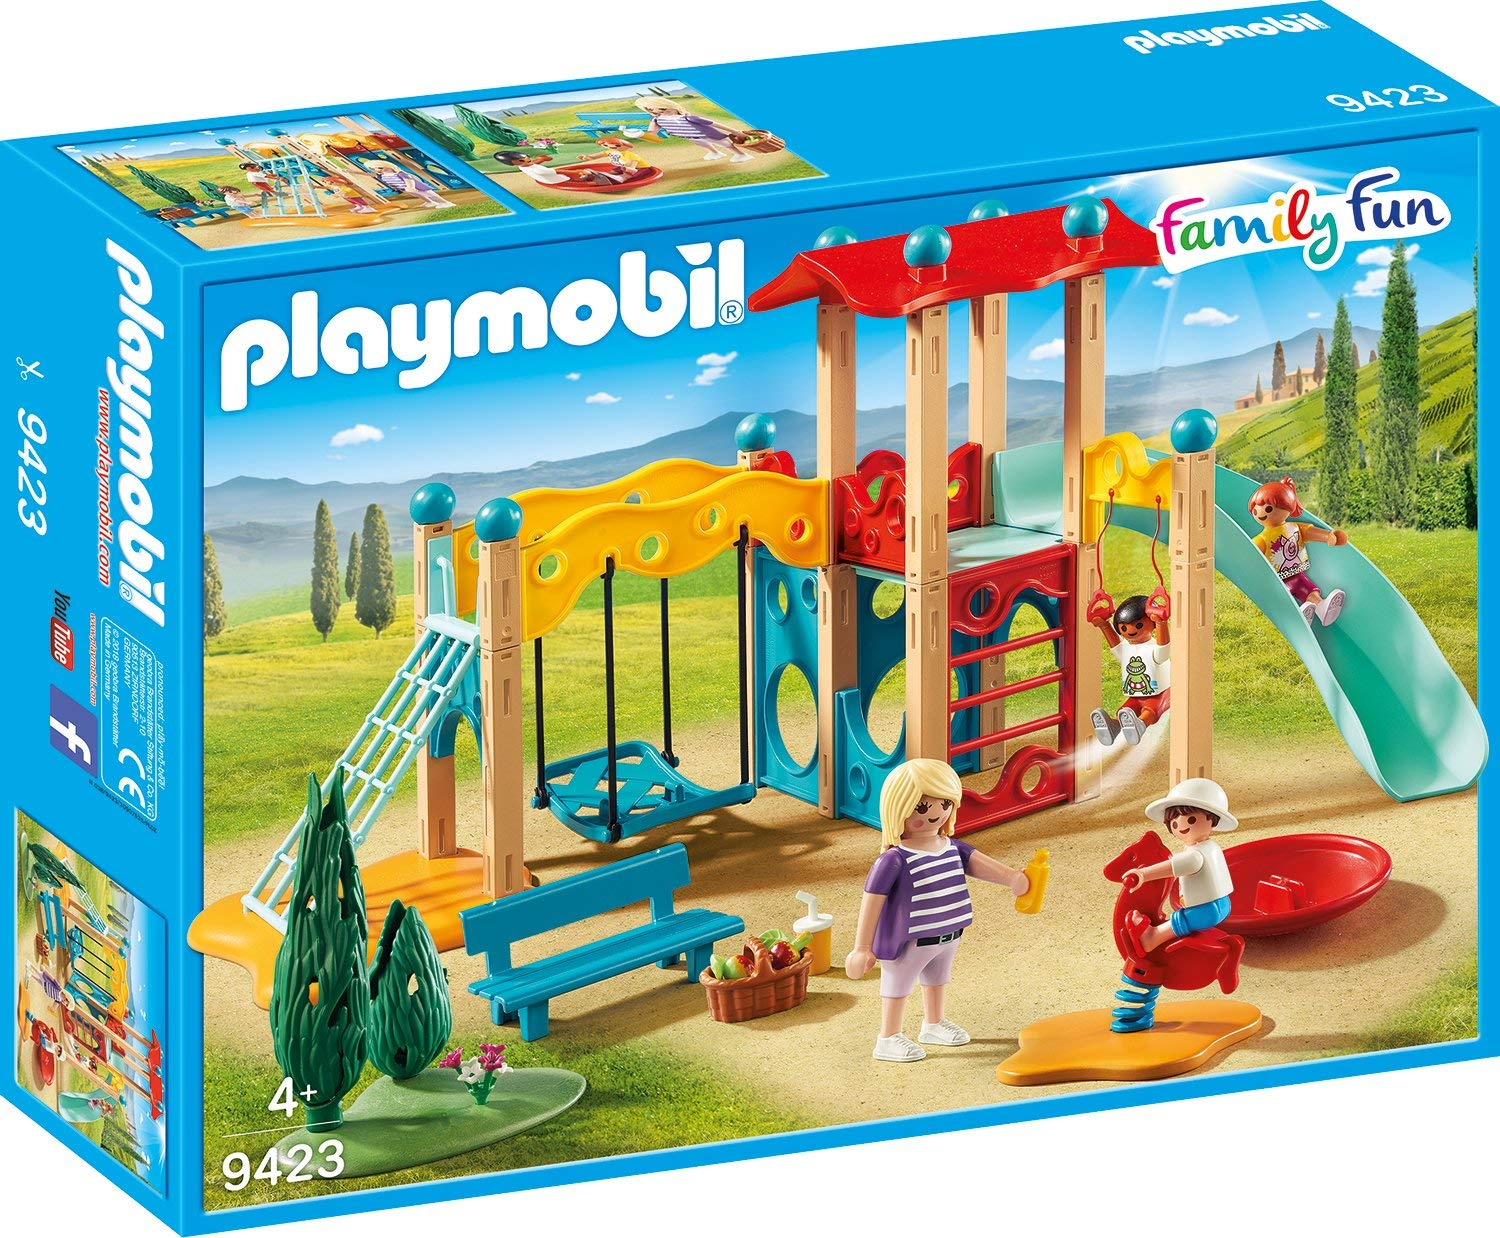 Playmobil Family Fun: Big Playground 9423